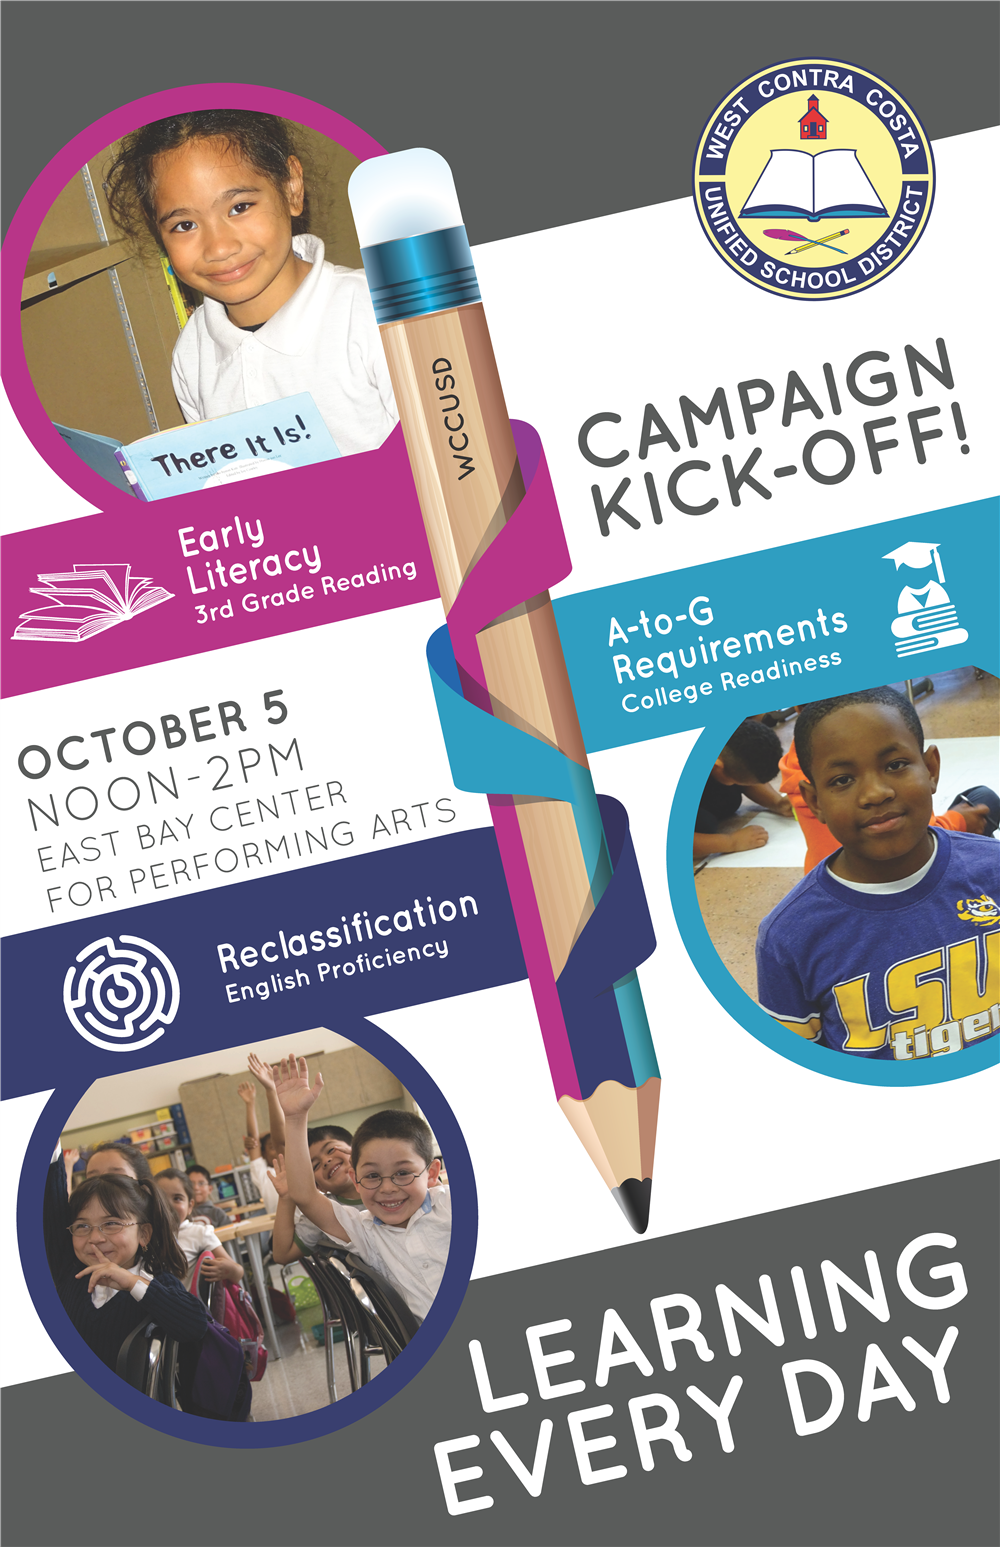 Kick Off Campaign Poster